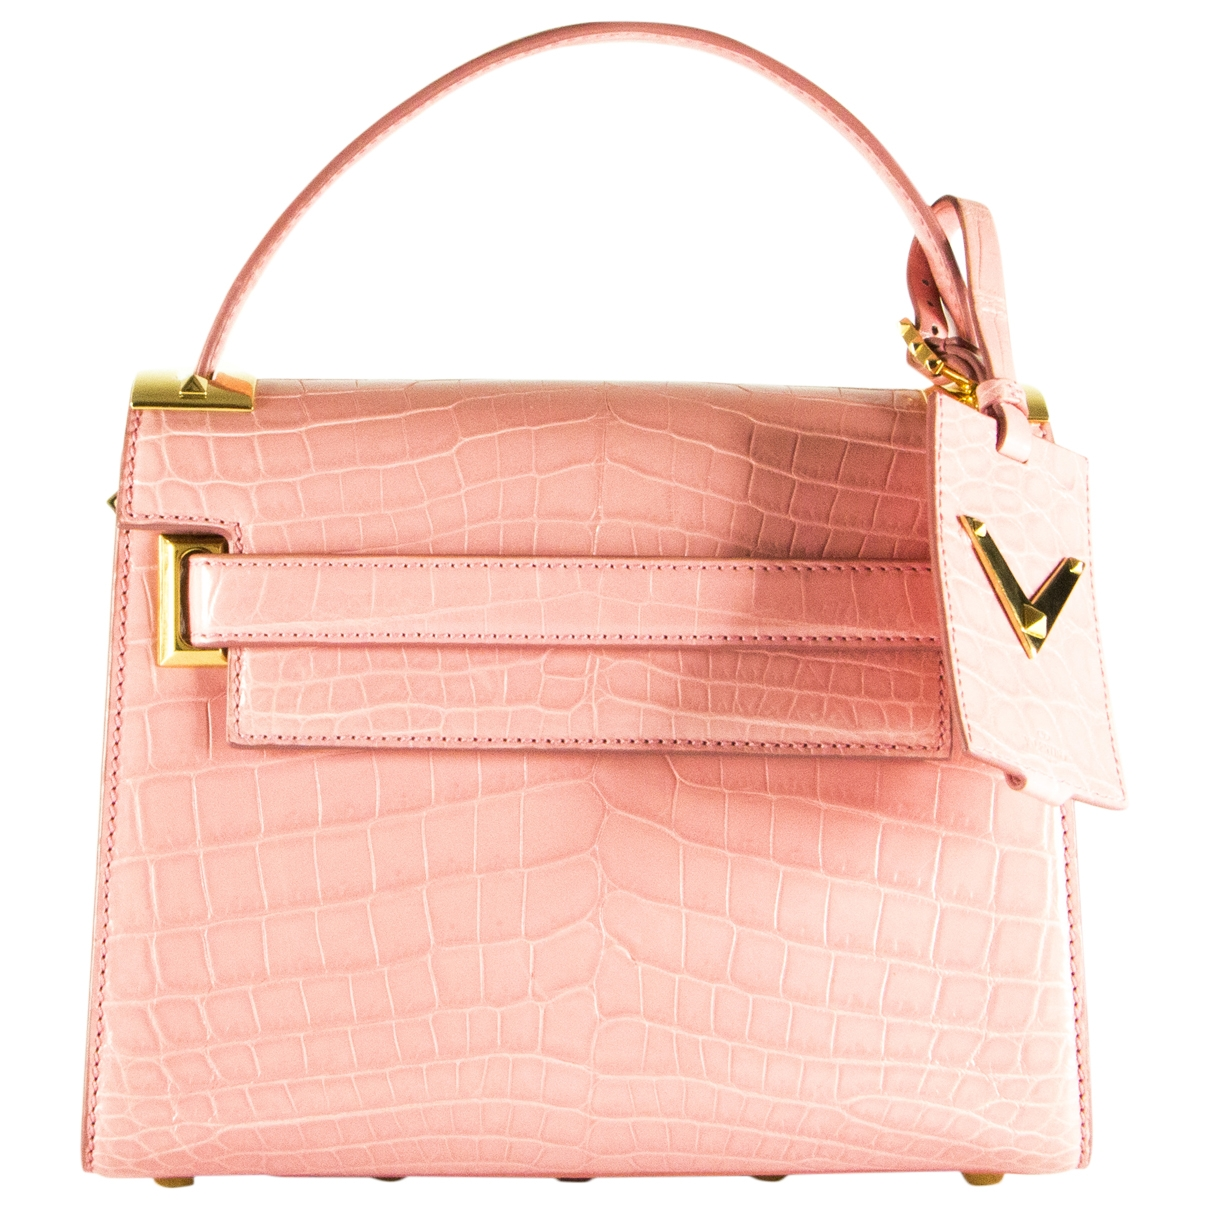 Valentino Garavani My Rockstud Pink Crocodile handbag for Women \N